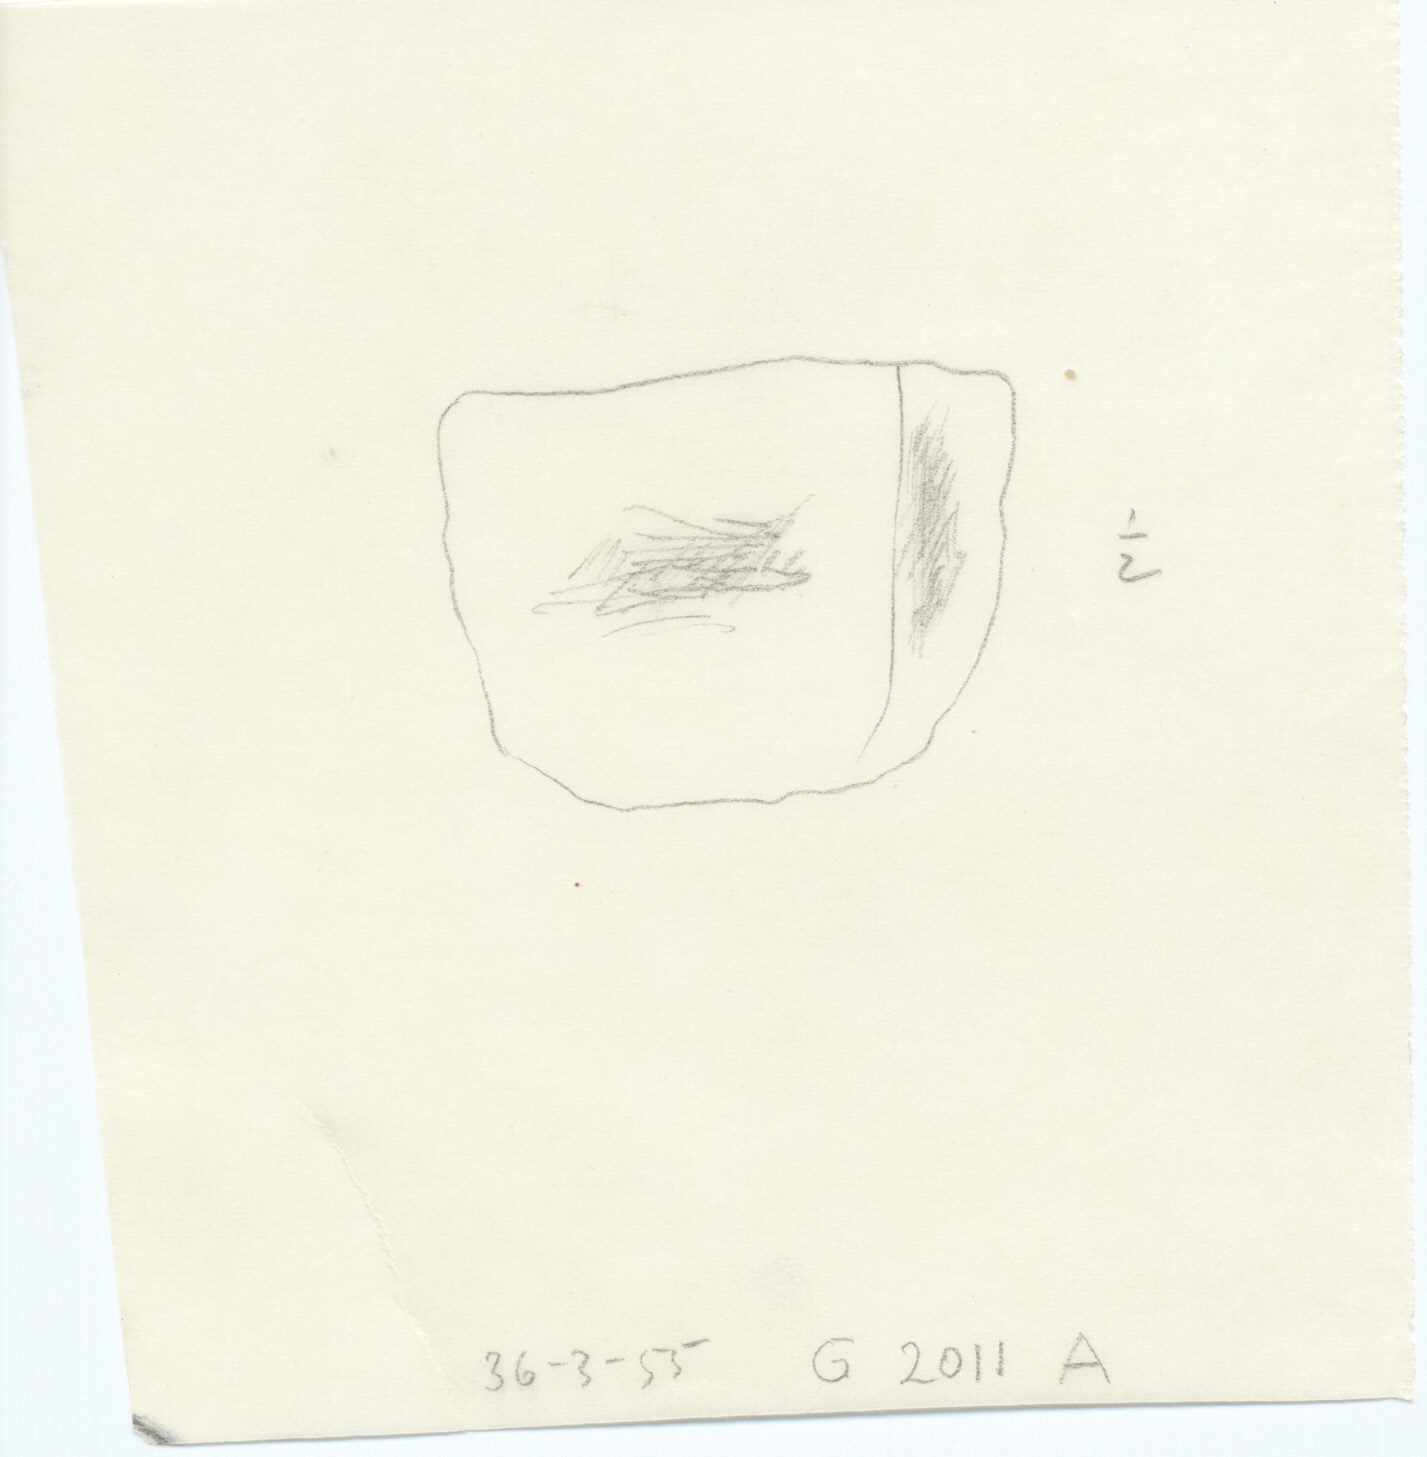 Drawings: G 2011, Shaft A: whetstone